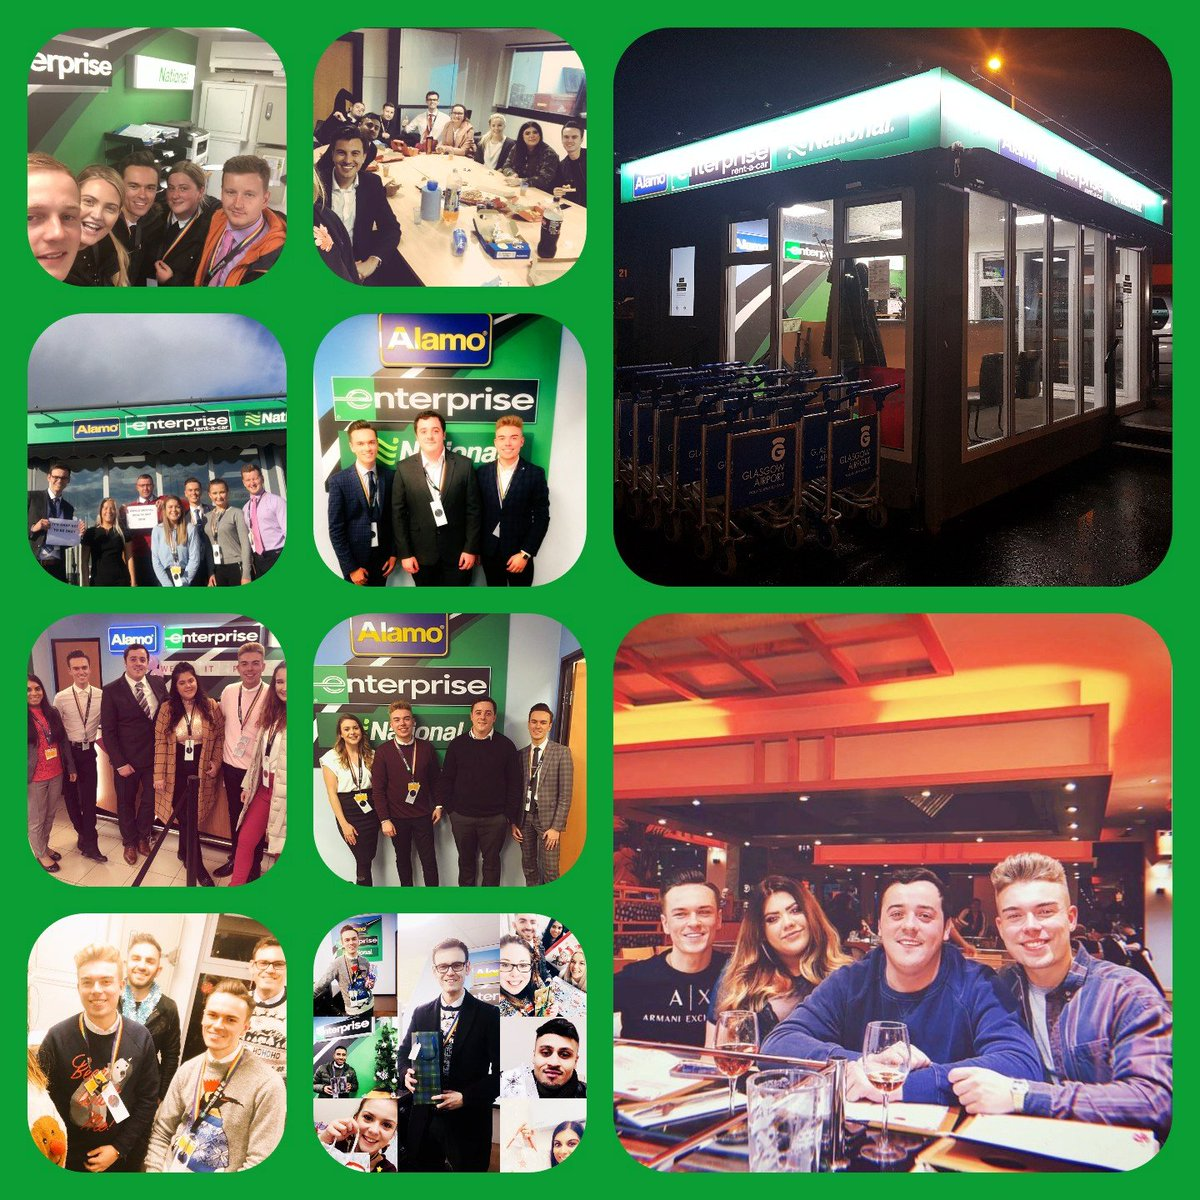 ADIOS!!!!! Last day with the dream team at SC21 today! What a 9 months it's been! Gutted to be leaving you all but looking forward to the new challenge ahead at Hamilton. Home City, here I come! #ERACScotland #rotationdate #nomoreairport #newchallenge